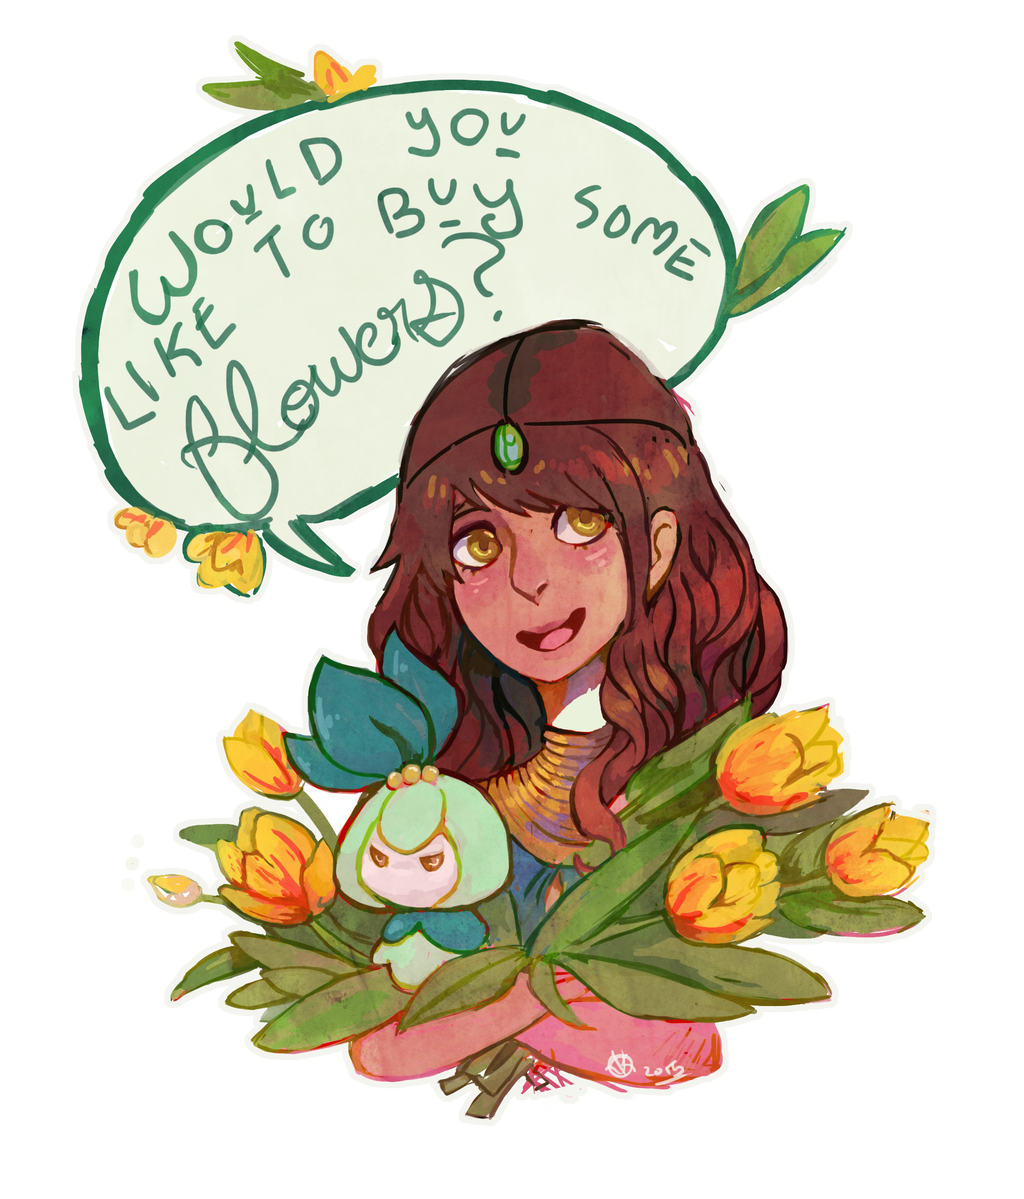 AT Would You Like to Buy some Flowers by KayVeeDee on DeviantArt